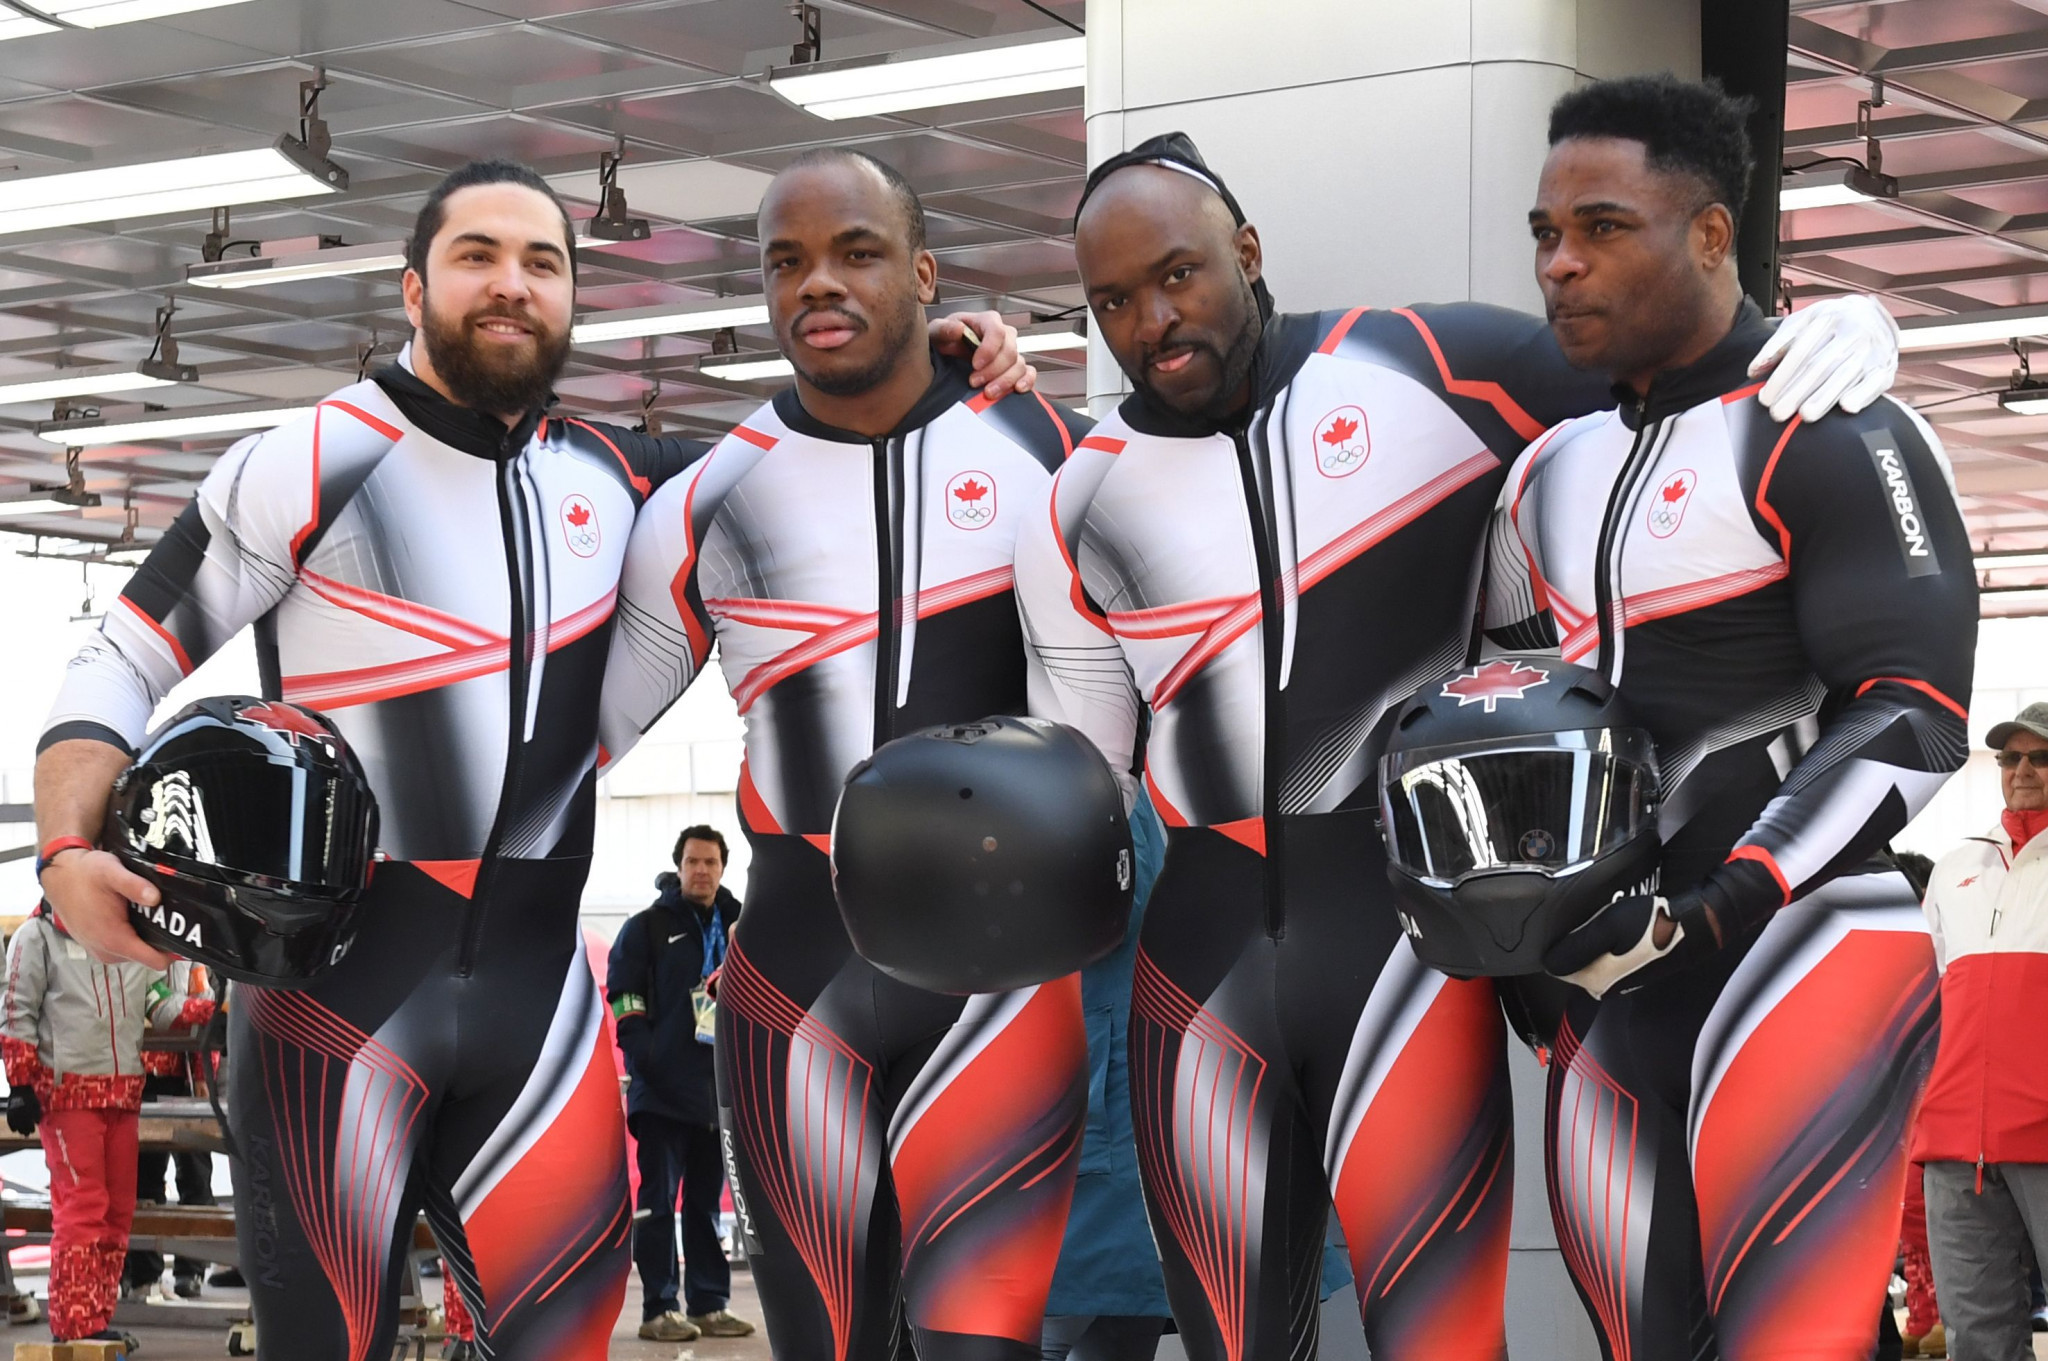 Three-times Canadian Olympic bobsleigh athlete Wright announces retirement